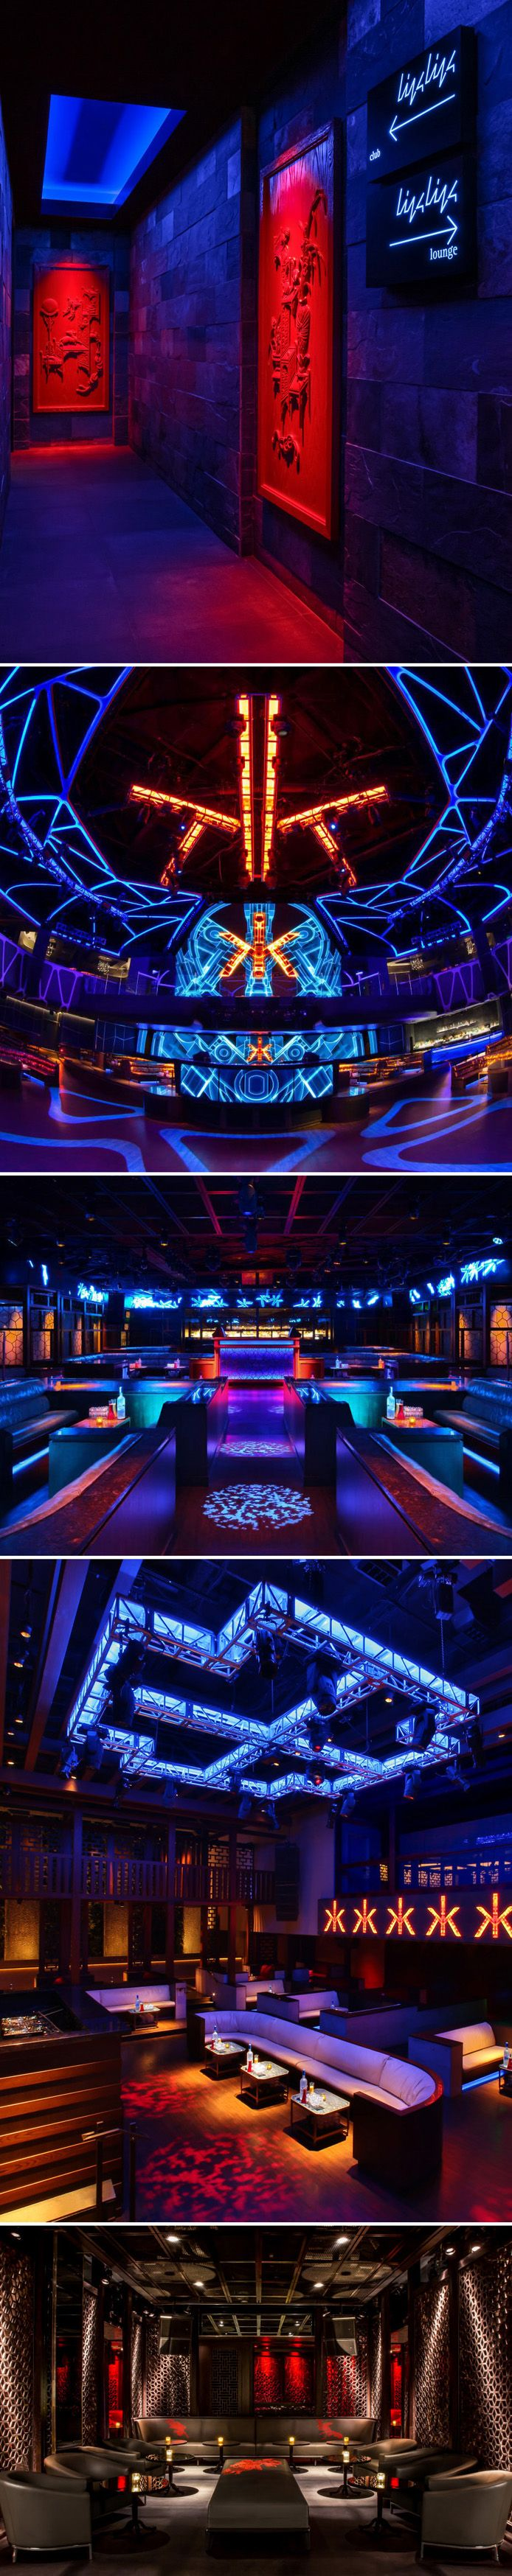 Hakkasan Las Vegas Restaurant And Nightclub Www Inlist Com Discover Reserve The Best Events Around The World Club Nightclub Design Nightclub Bar Club Design